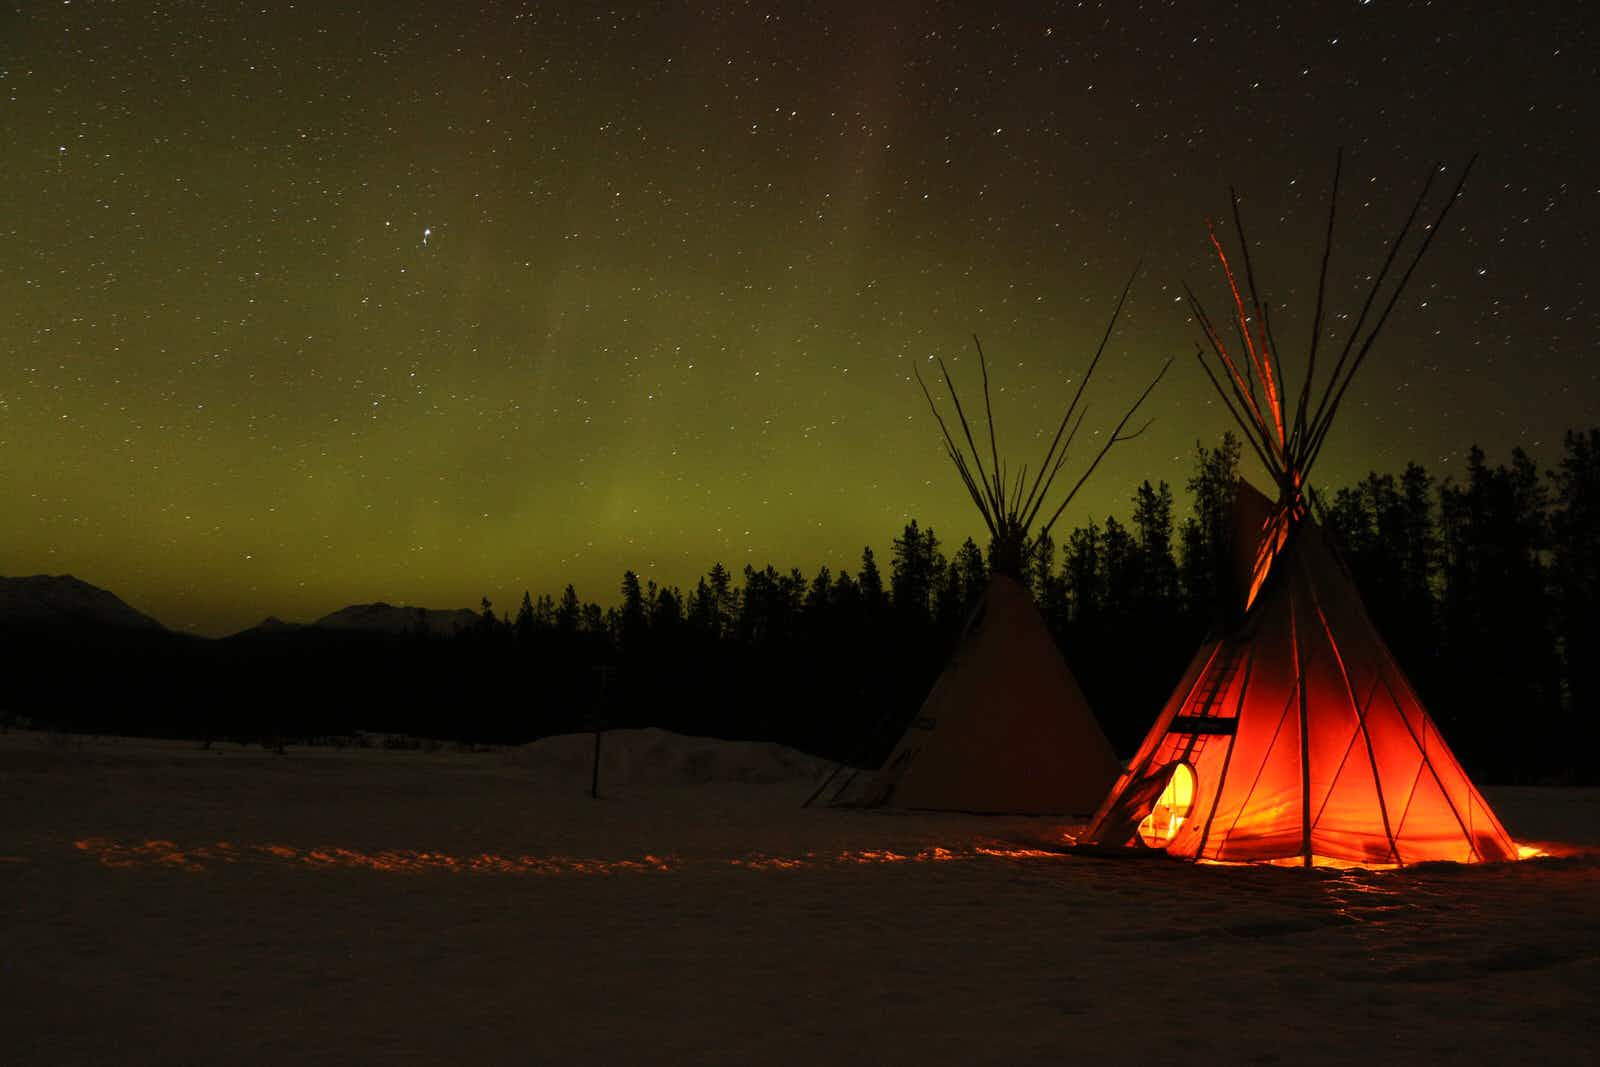 The northern lights glow in the distance on a black landscape while a tipi glows in the foreground © Mike MacEacheran / Lonely Planet